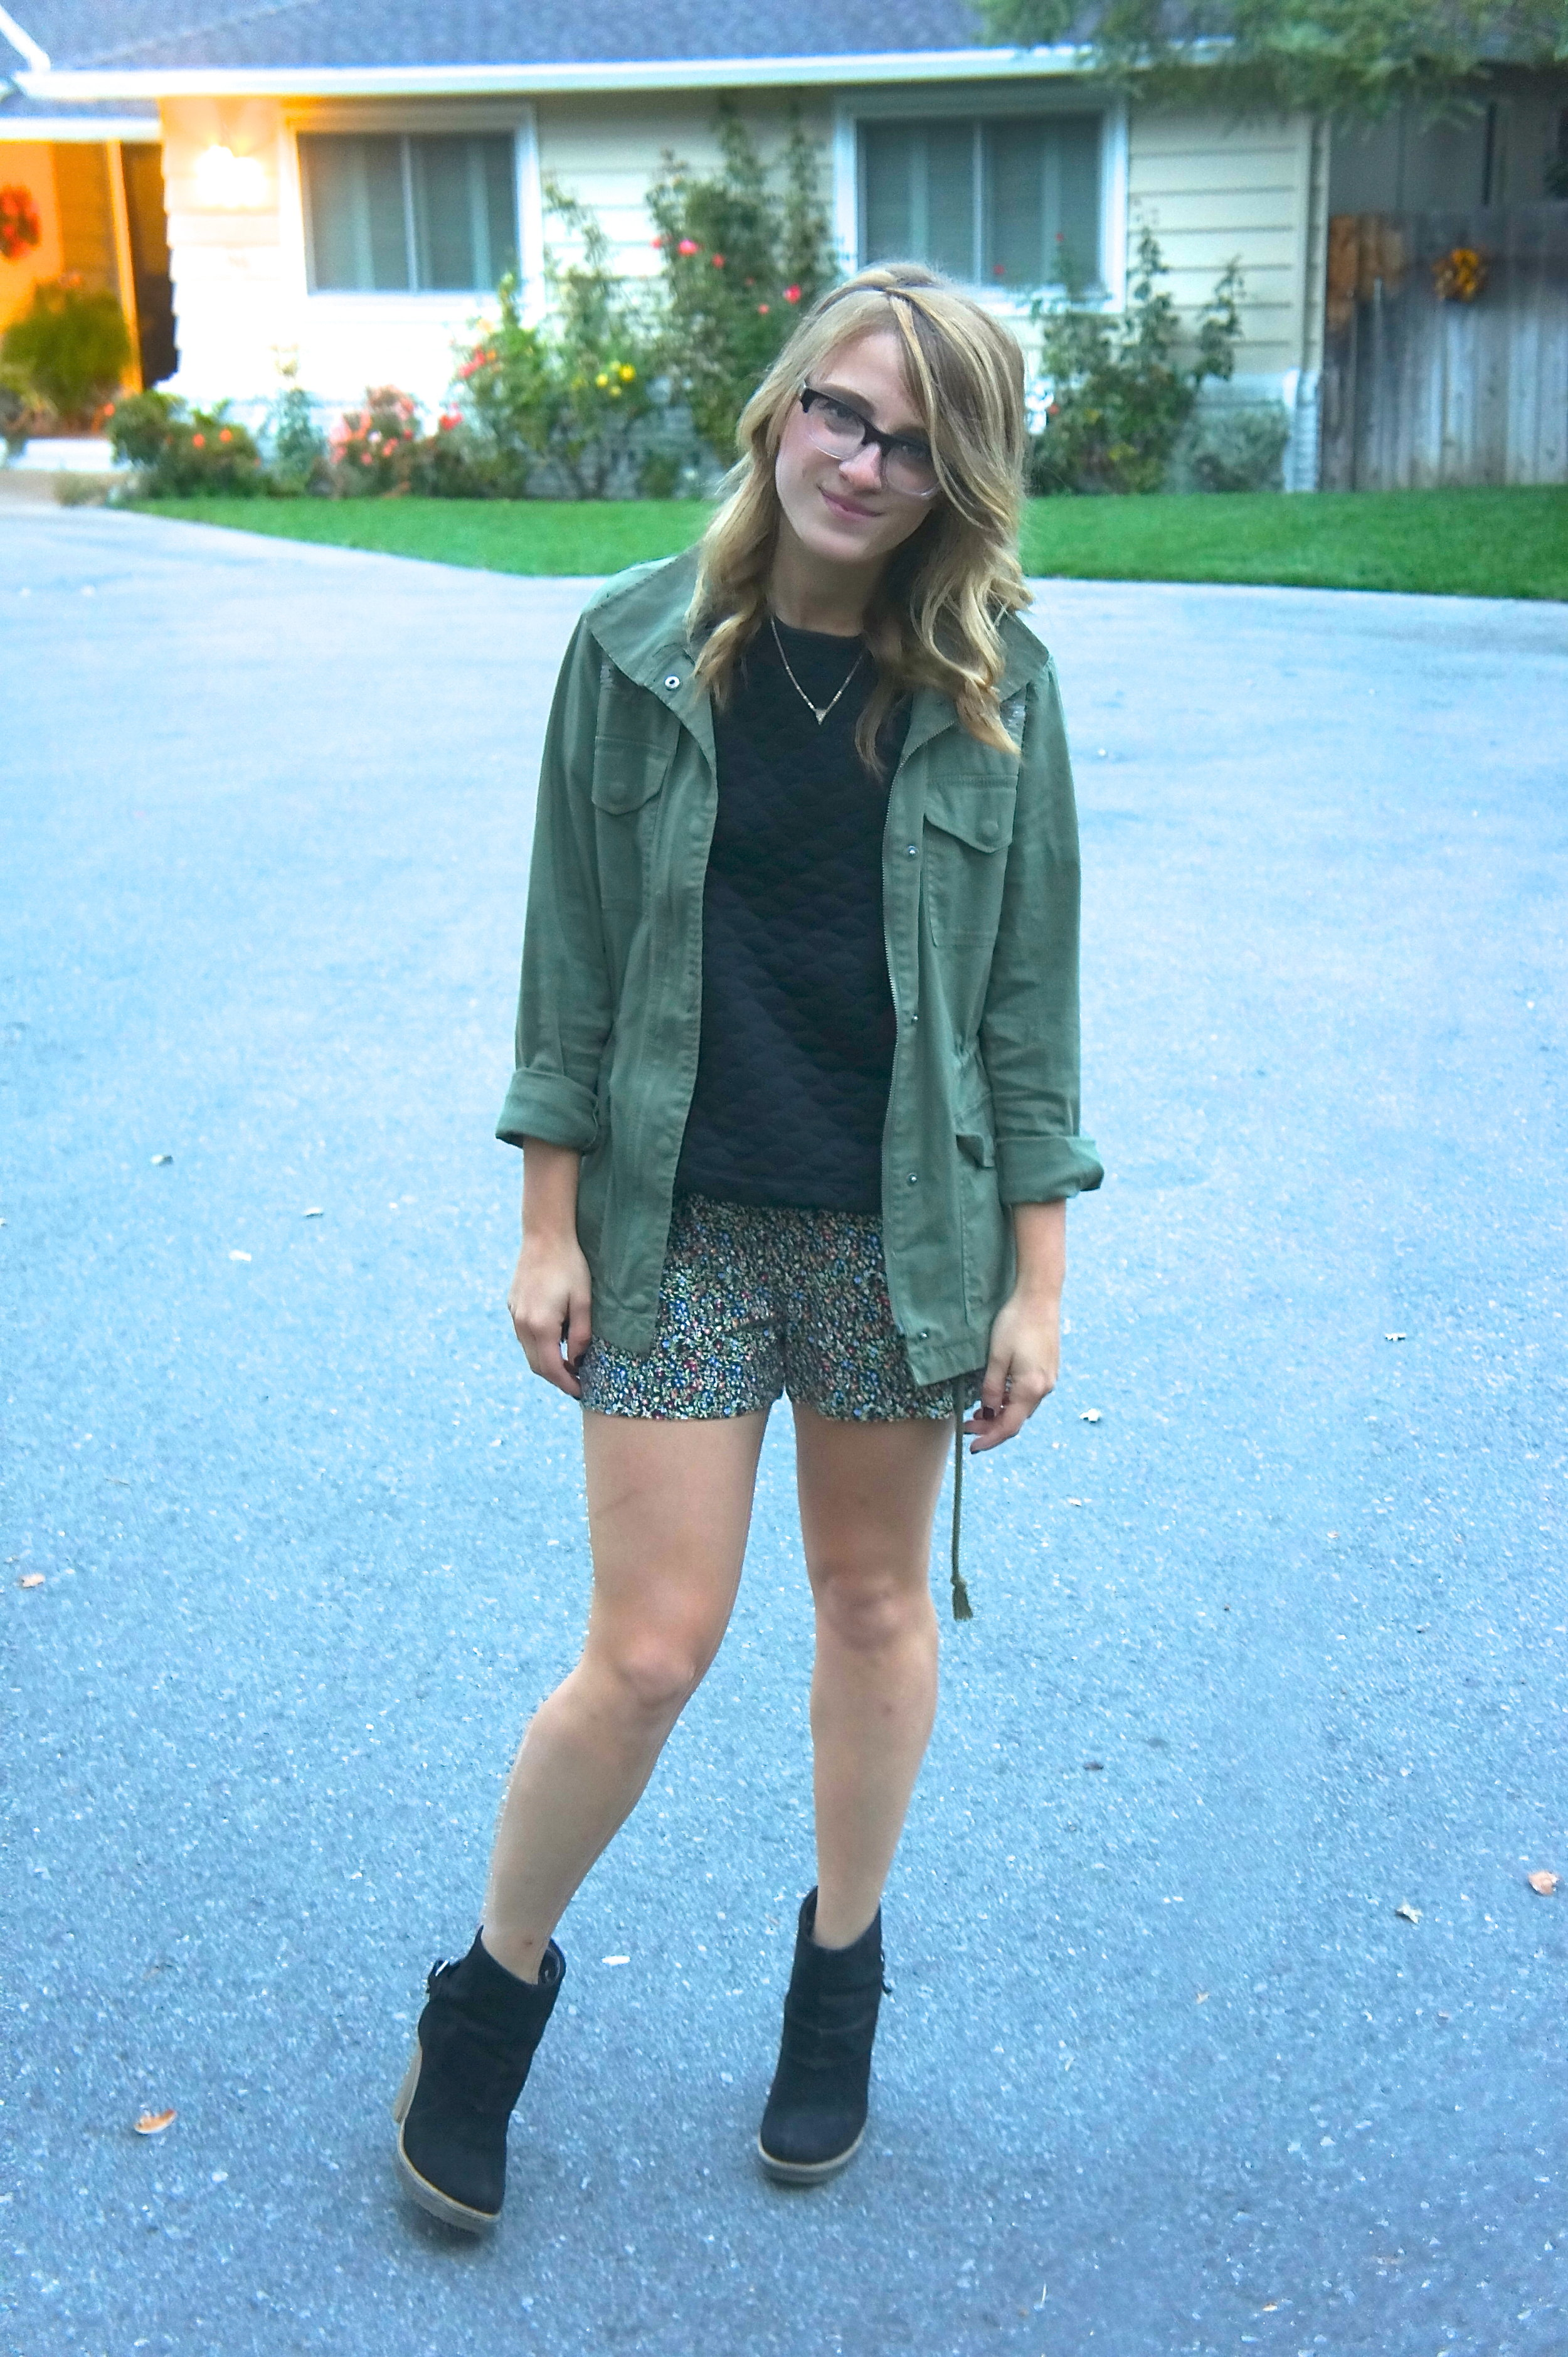 Jacket: Gap | Blouse: Target | Romper: F21 | Shoes: F21